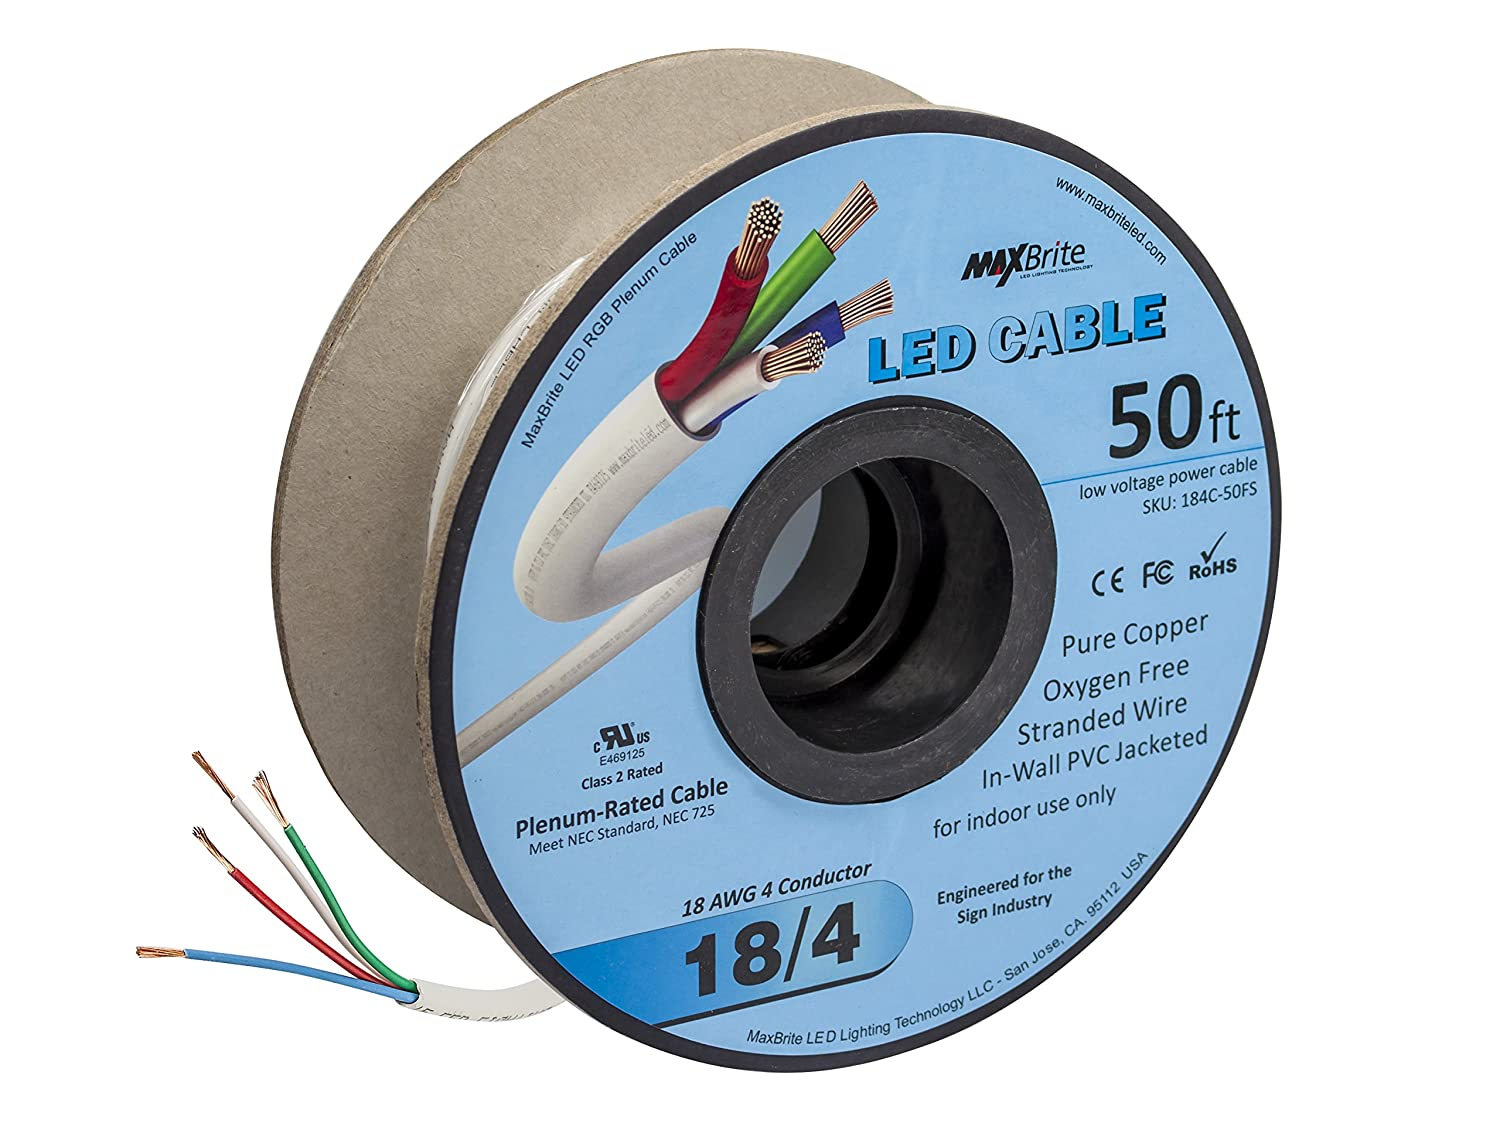 18AWG Low Voltage LED Cable 4 Conductor In-Wall Jacketed Pure Copper ...